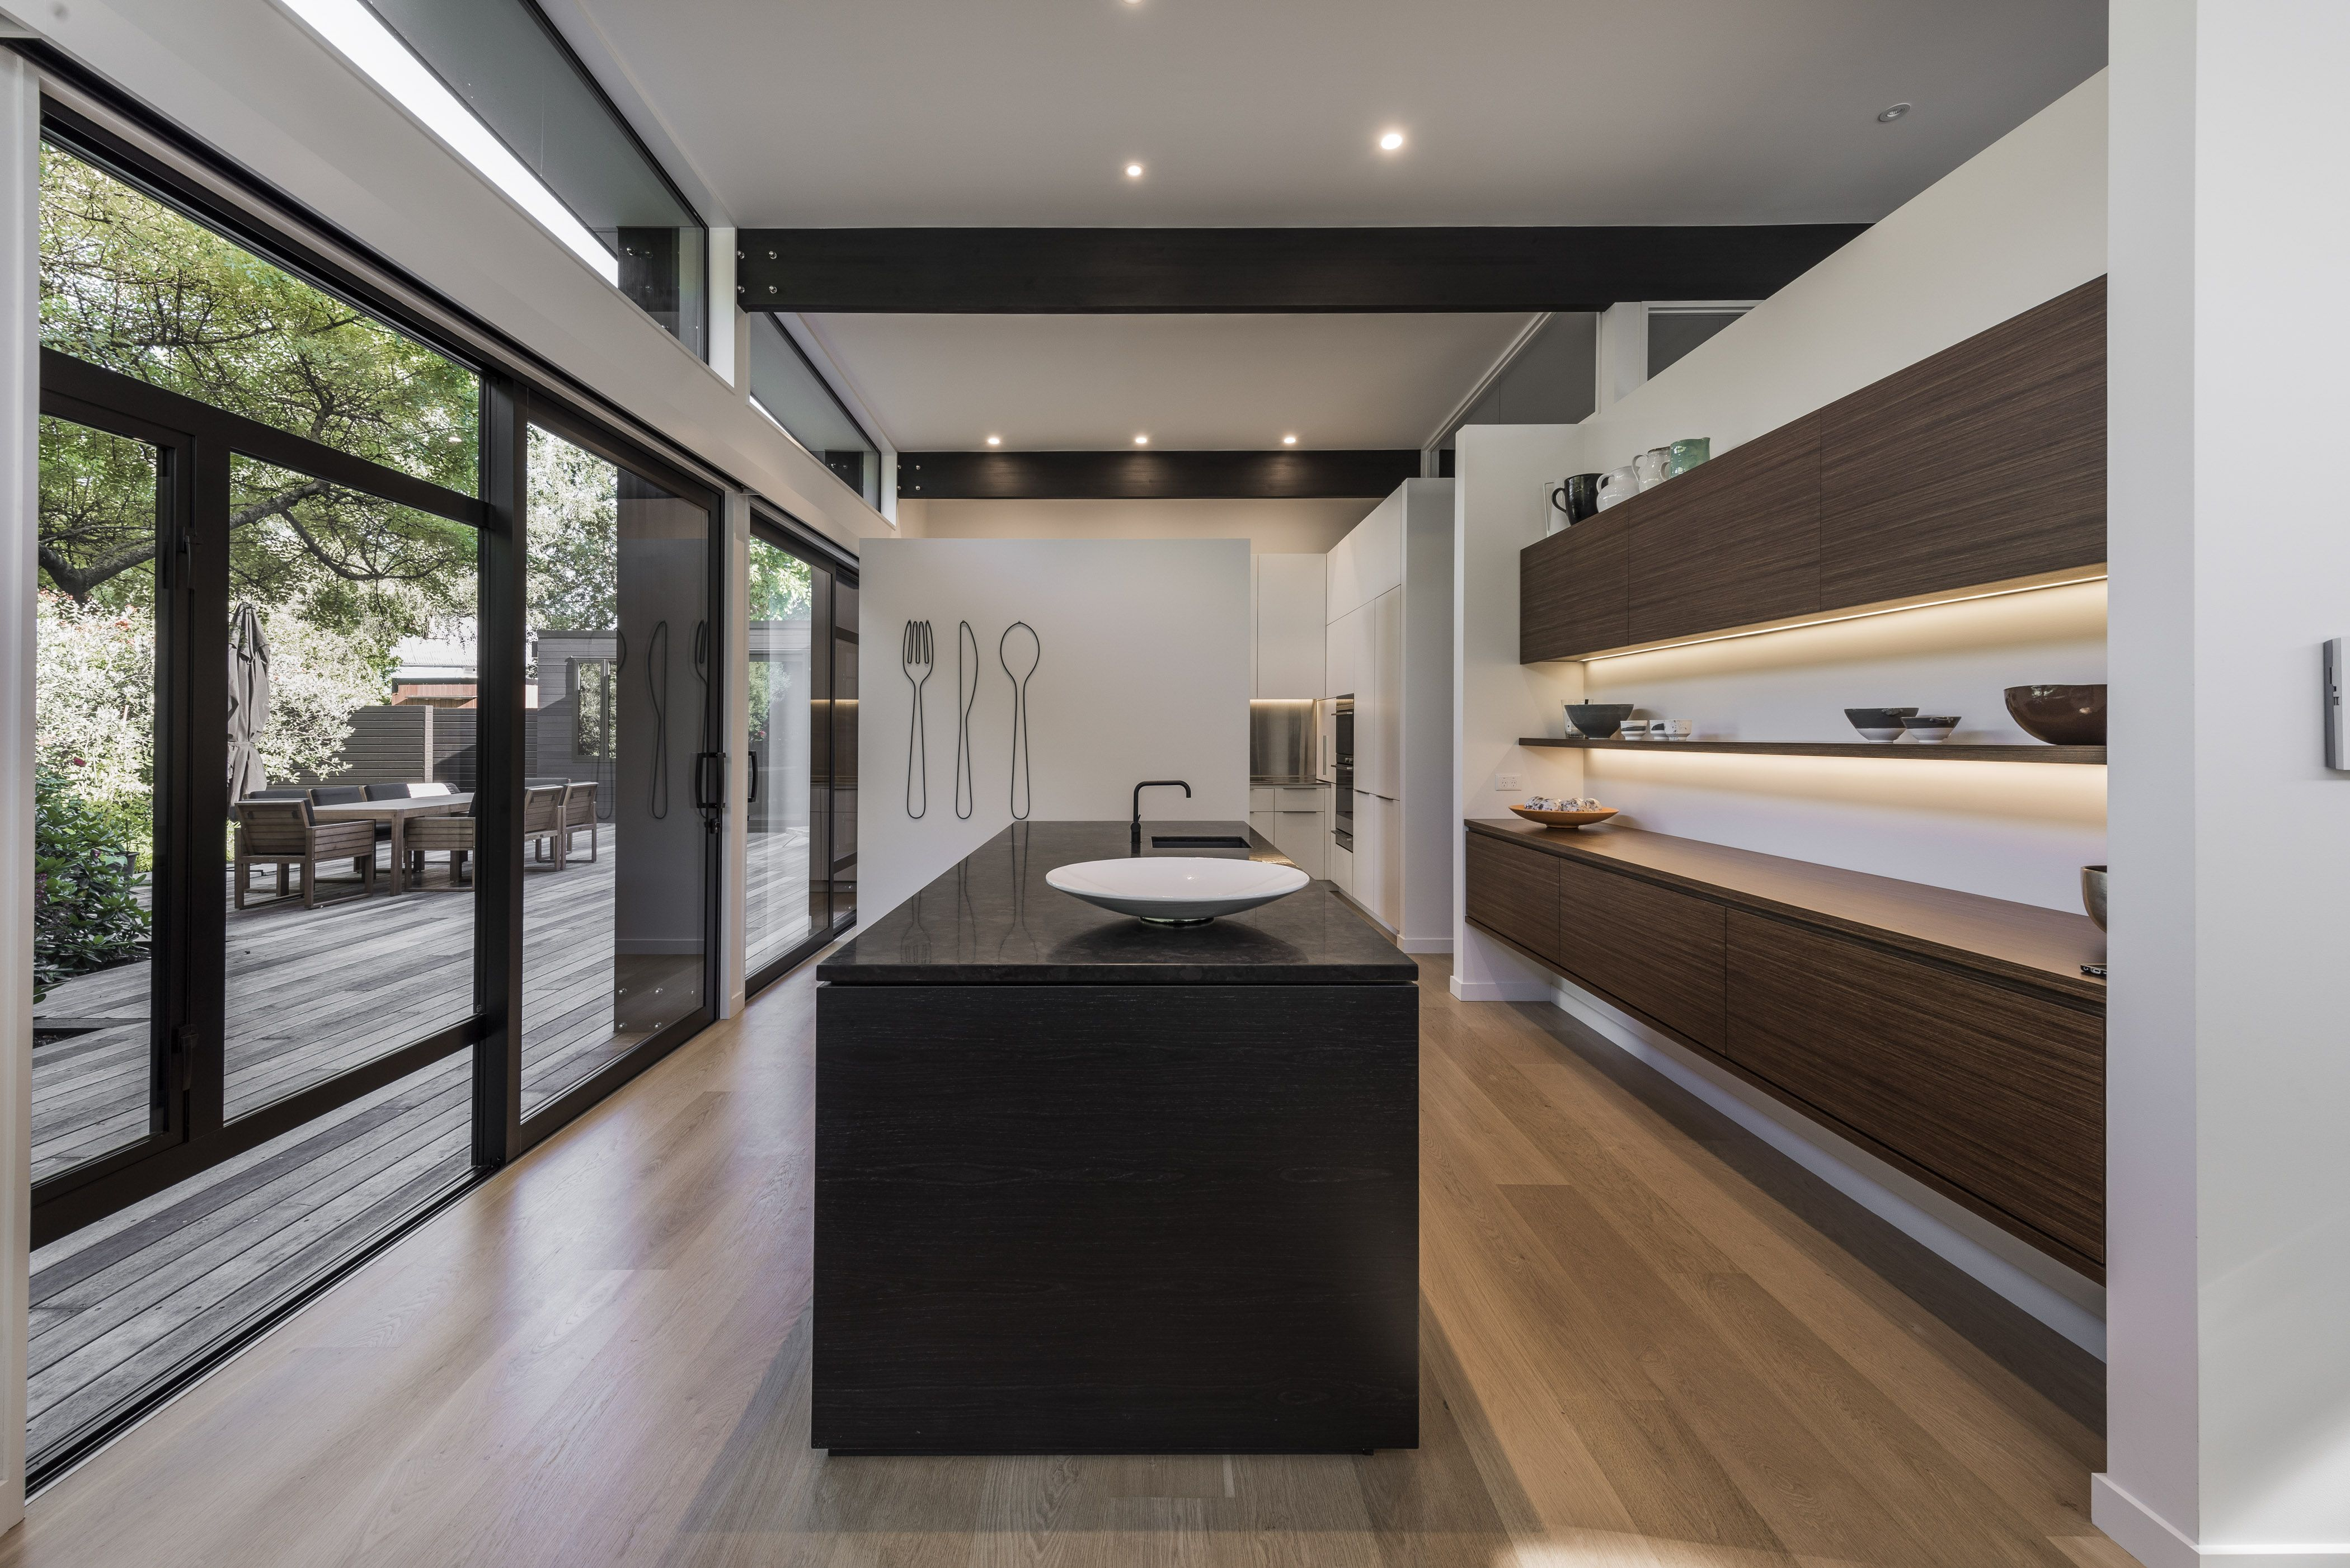 Kitchens With A Hidden Scullery